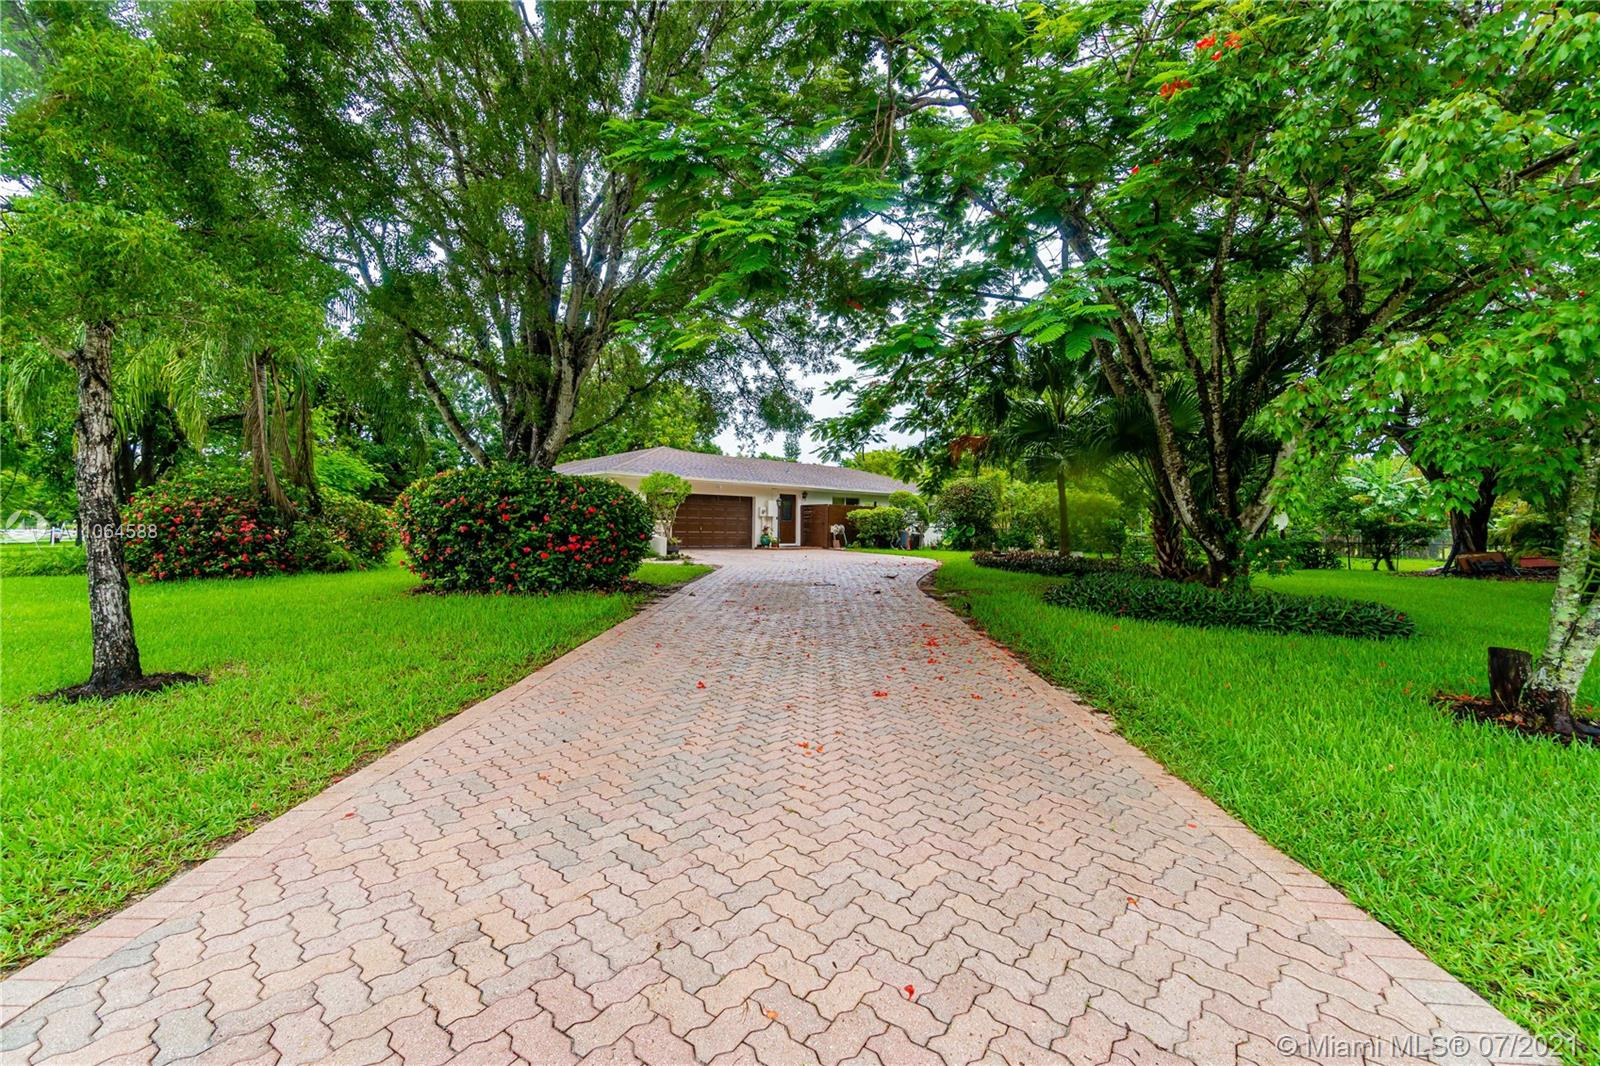 Rolling Oaks, 5079 SW 178th Ave, Southwest Ranches, Florida 33331